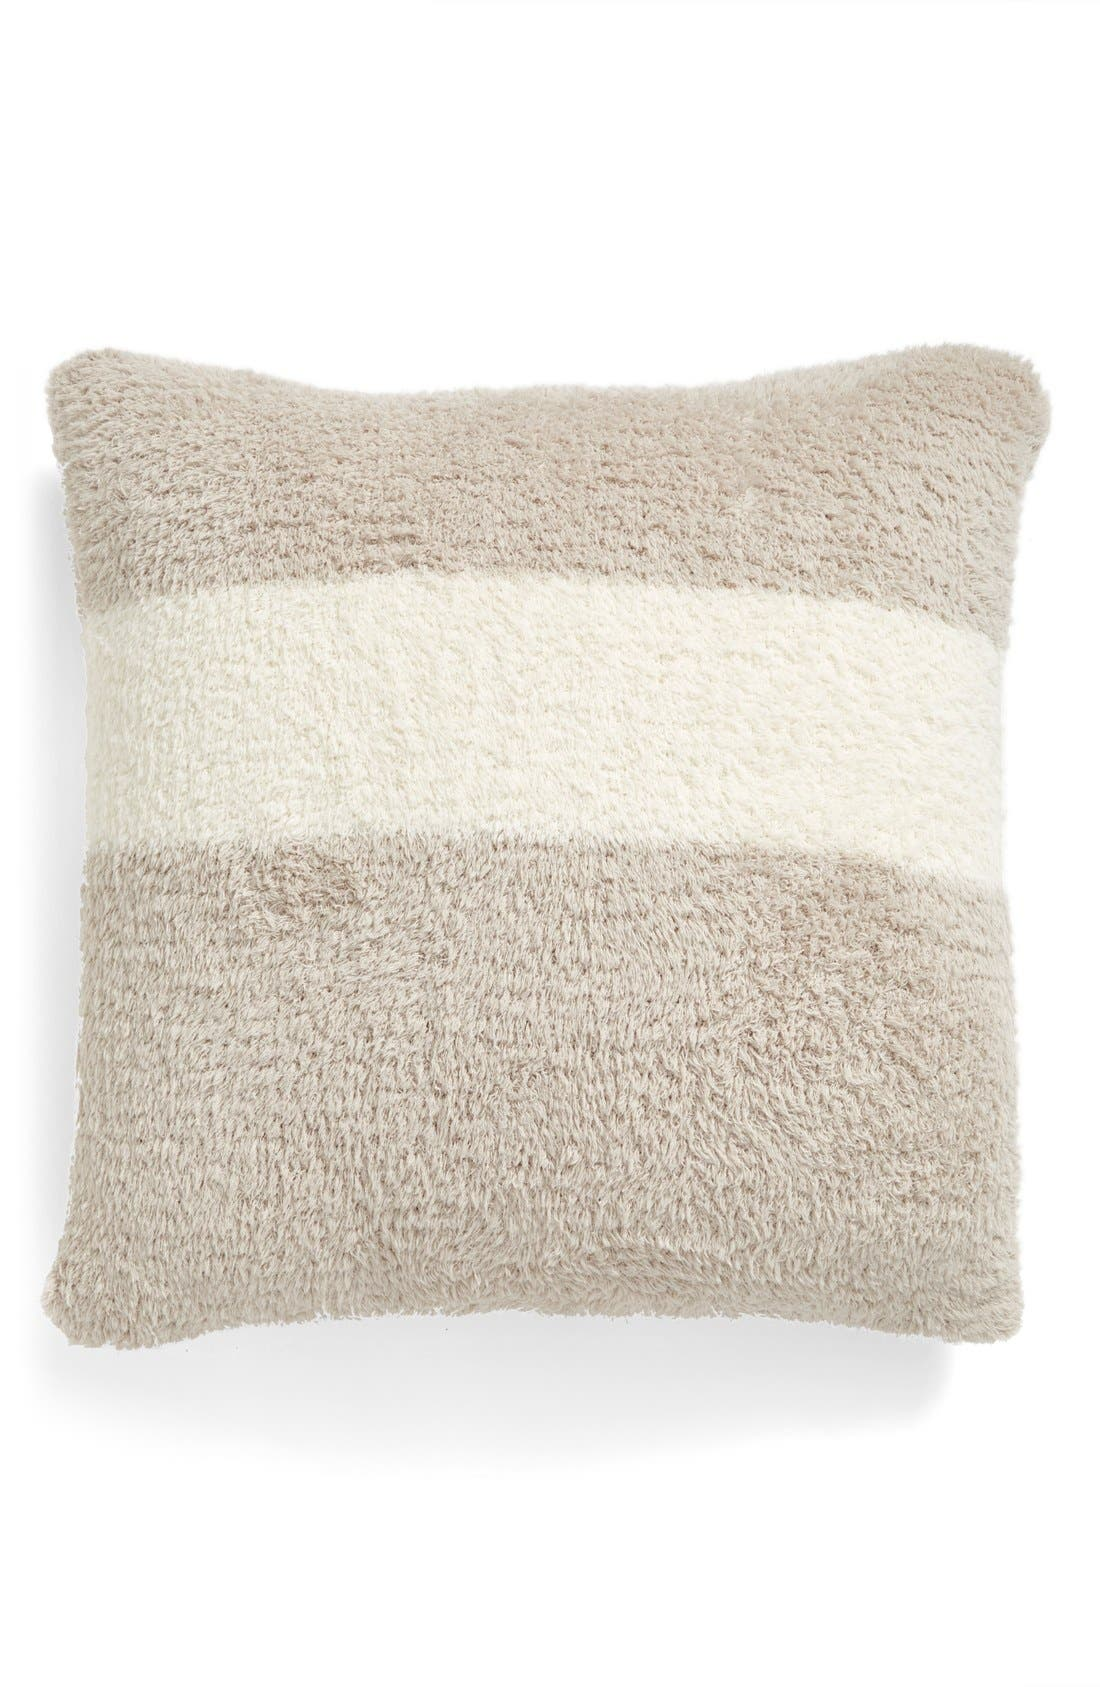 Alternate Image 1 Selected - Barefoot Dreams® CozyChic® Stripe Pillow